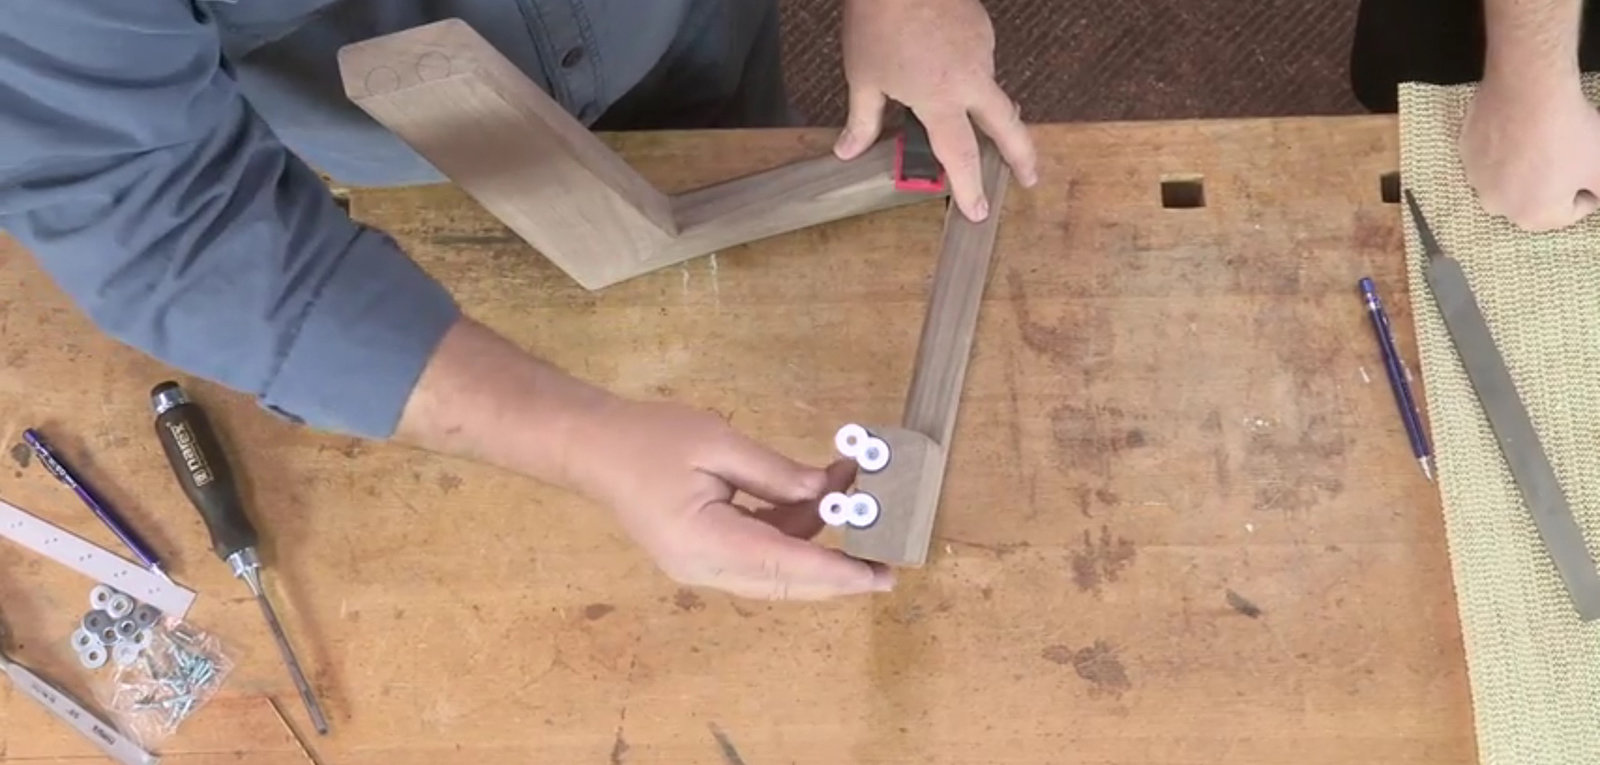 designing for wood movement, part 2: using cleats or buttons